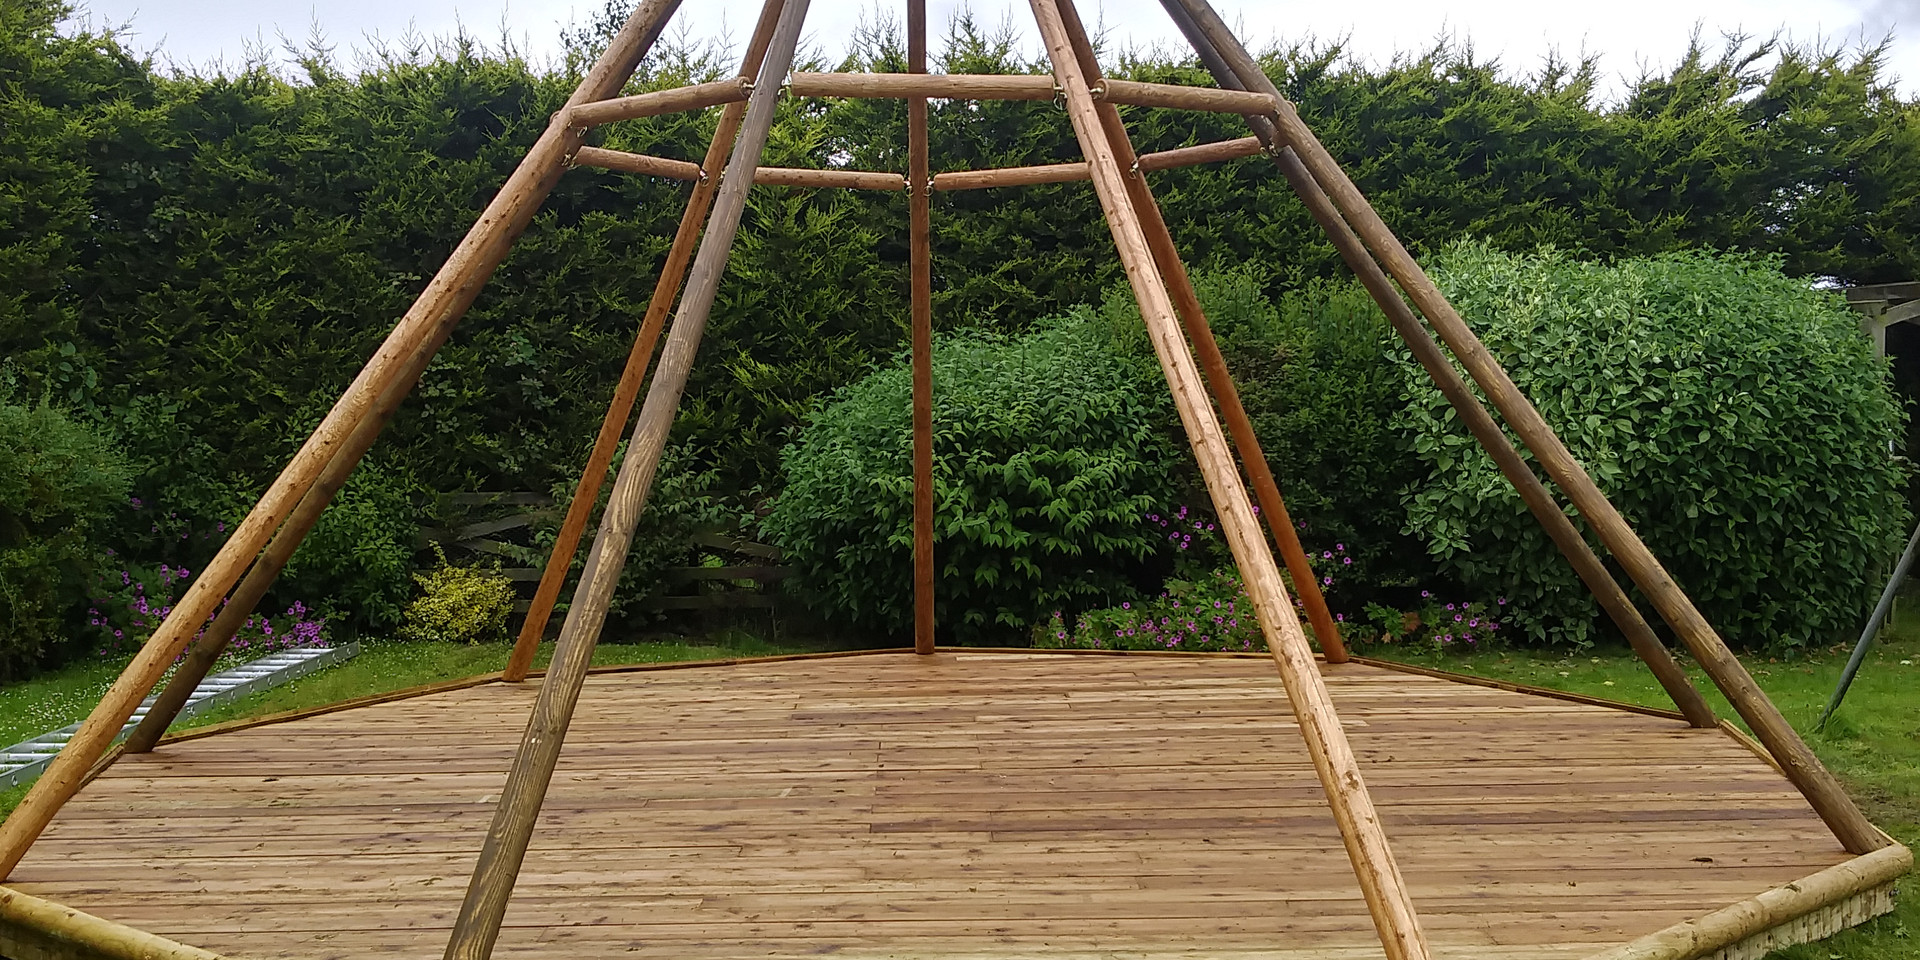 Tipi Poles on Timber Floor